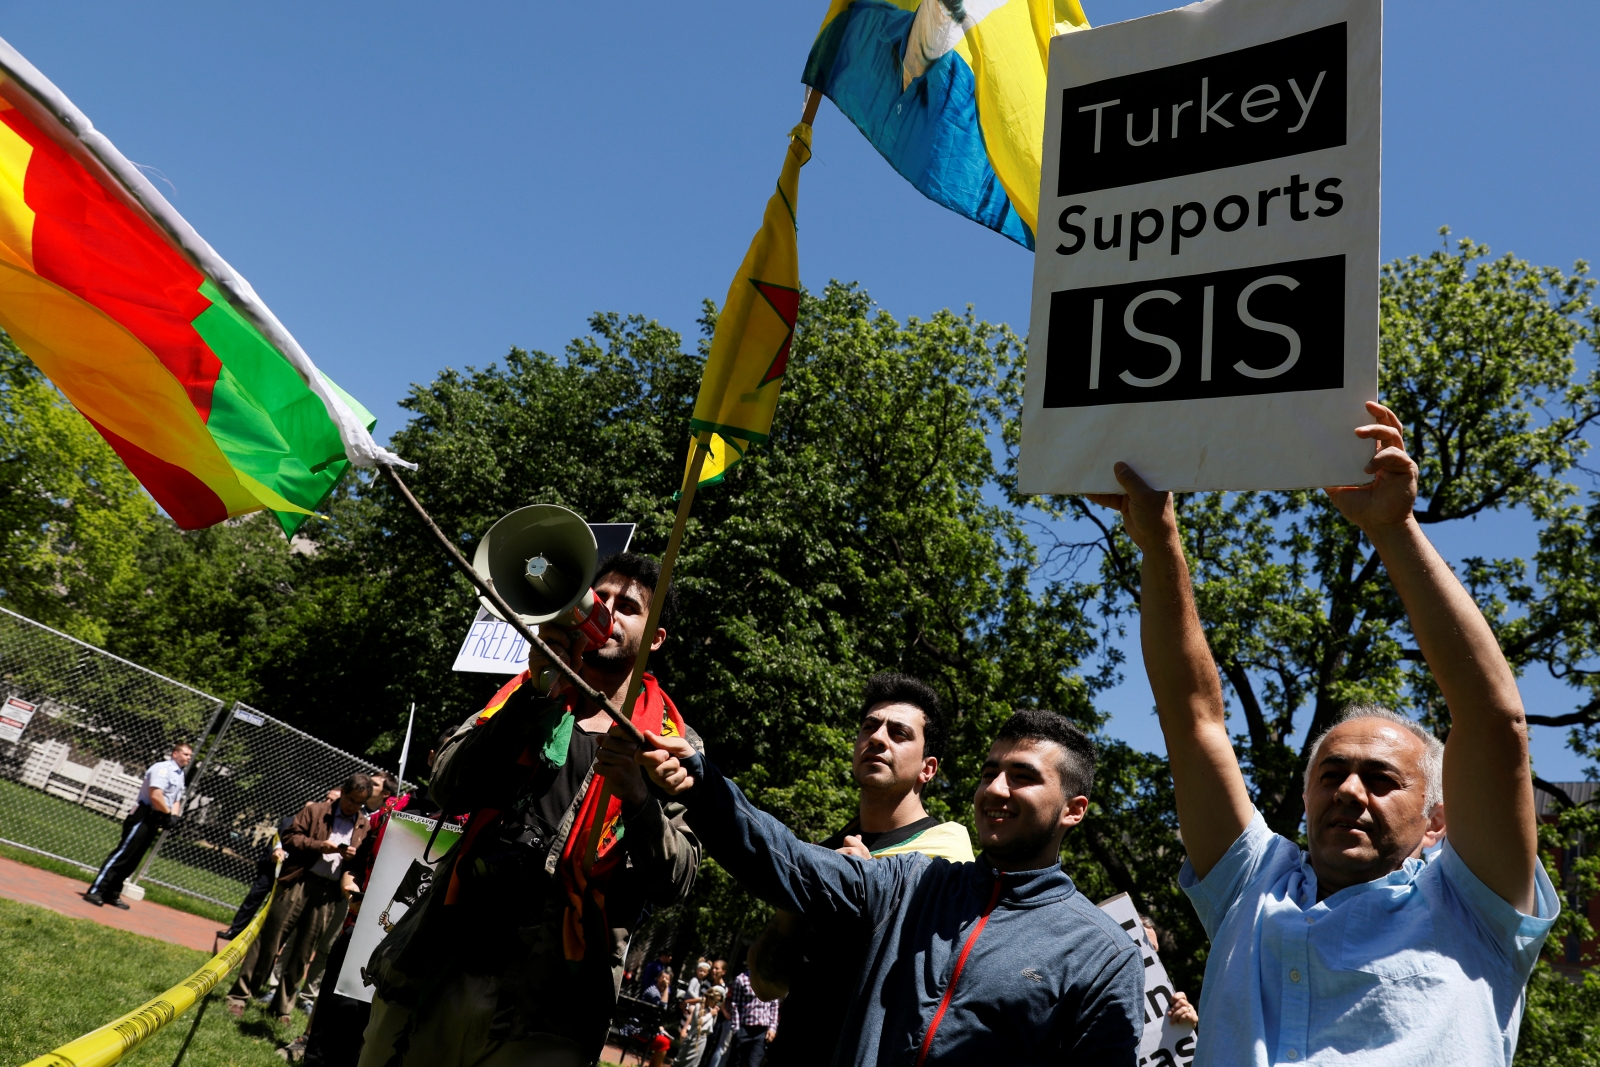 Kurdish supporters protest in Washington